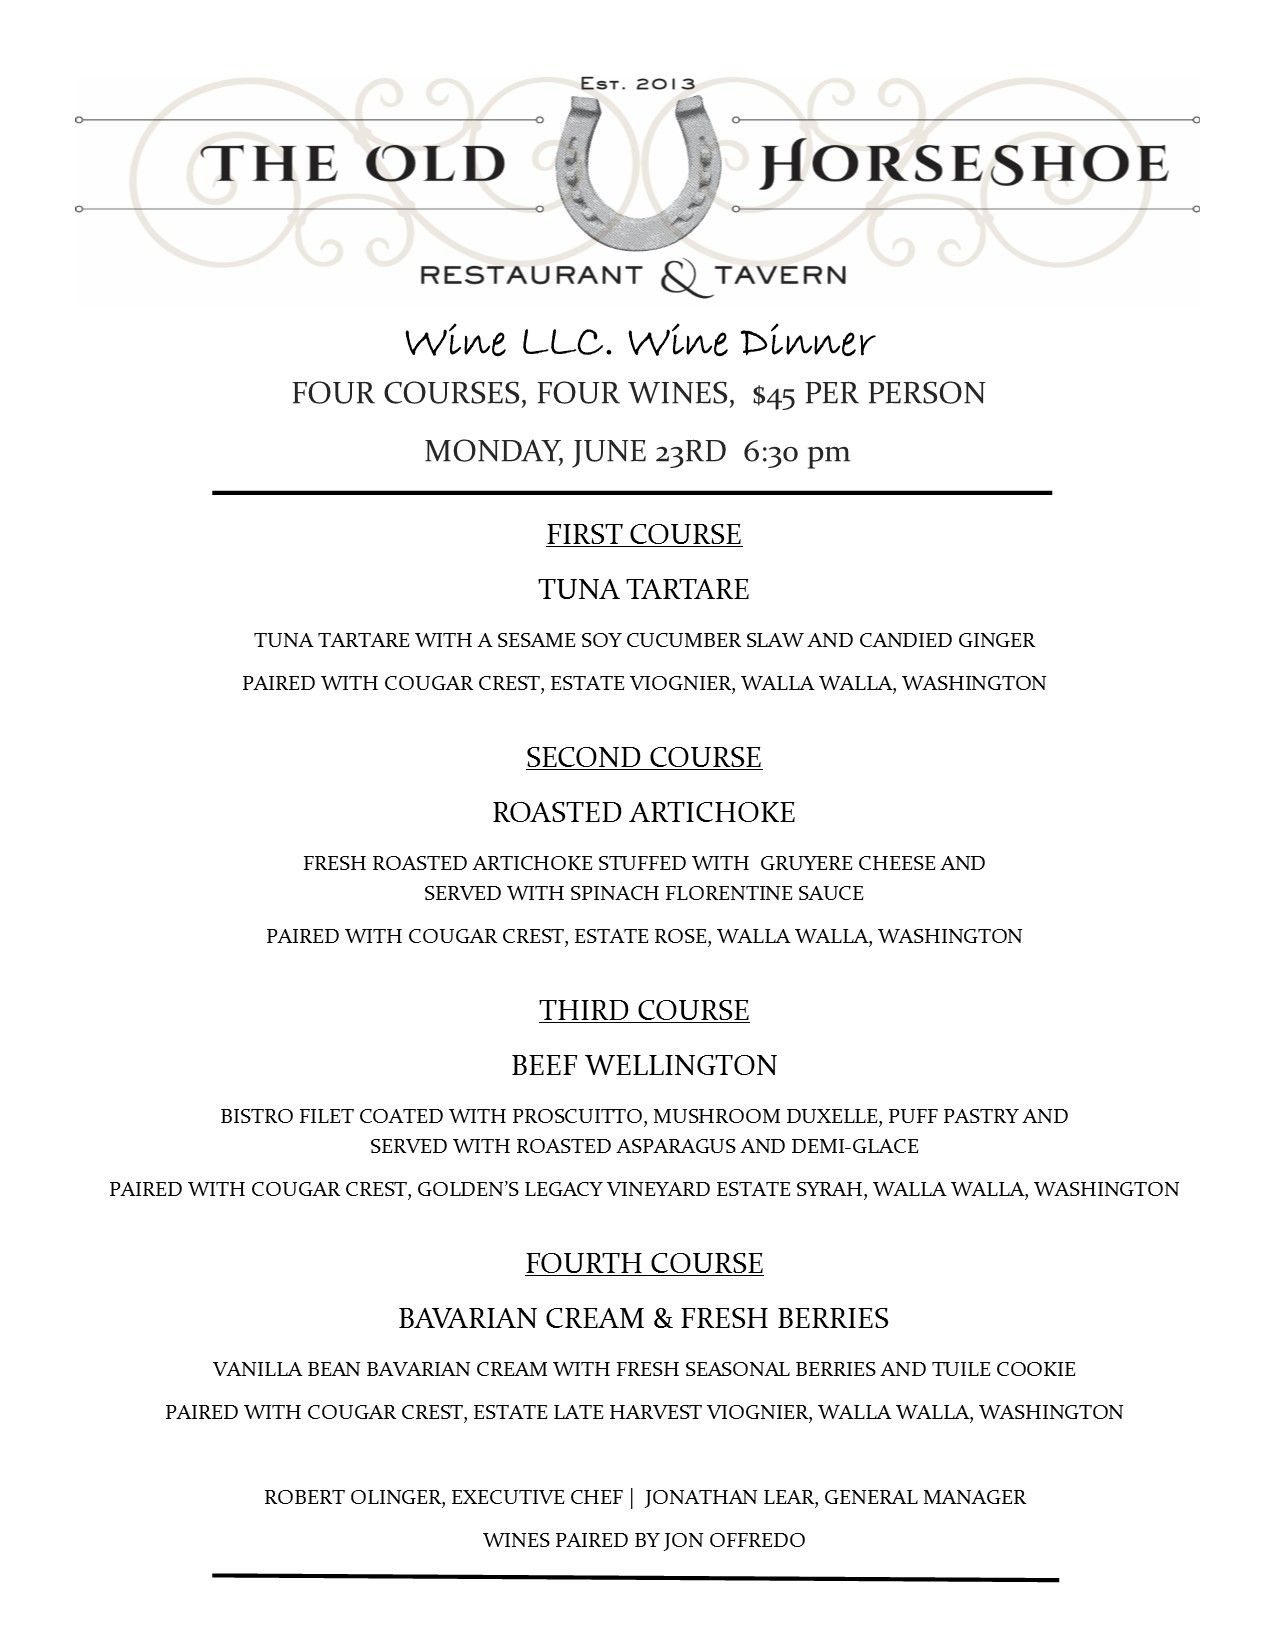 Our Second Monthly Wine Dinner Menu